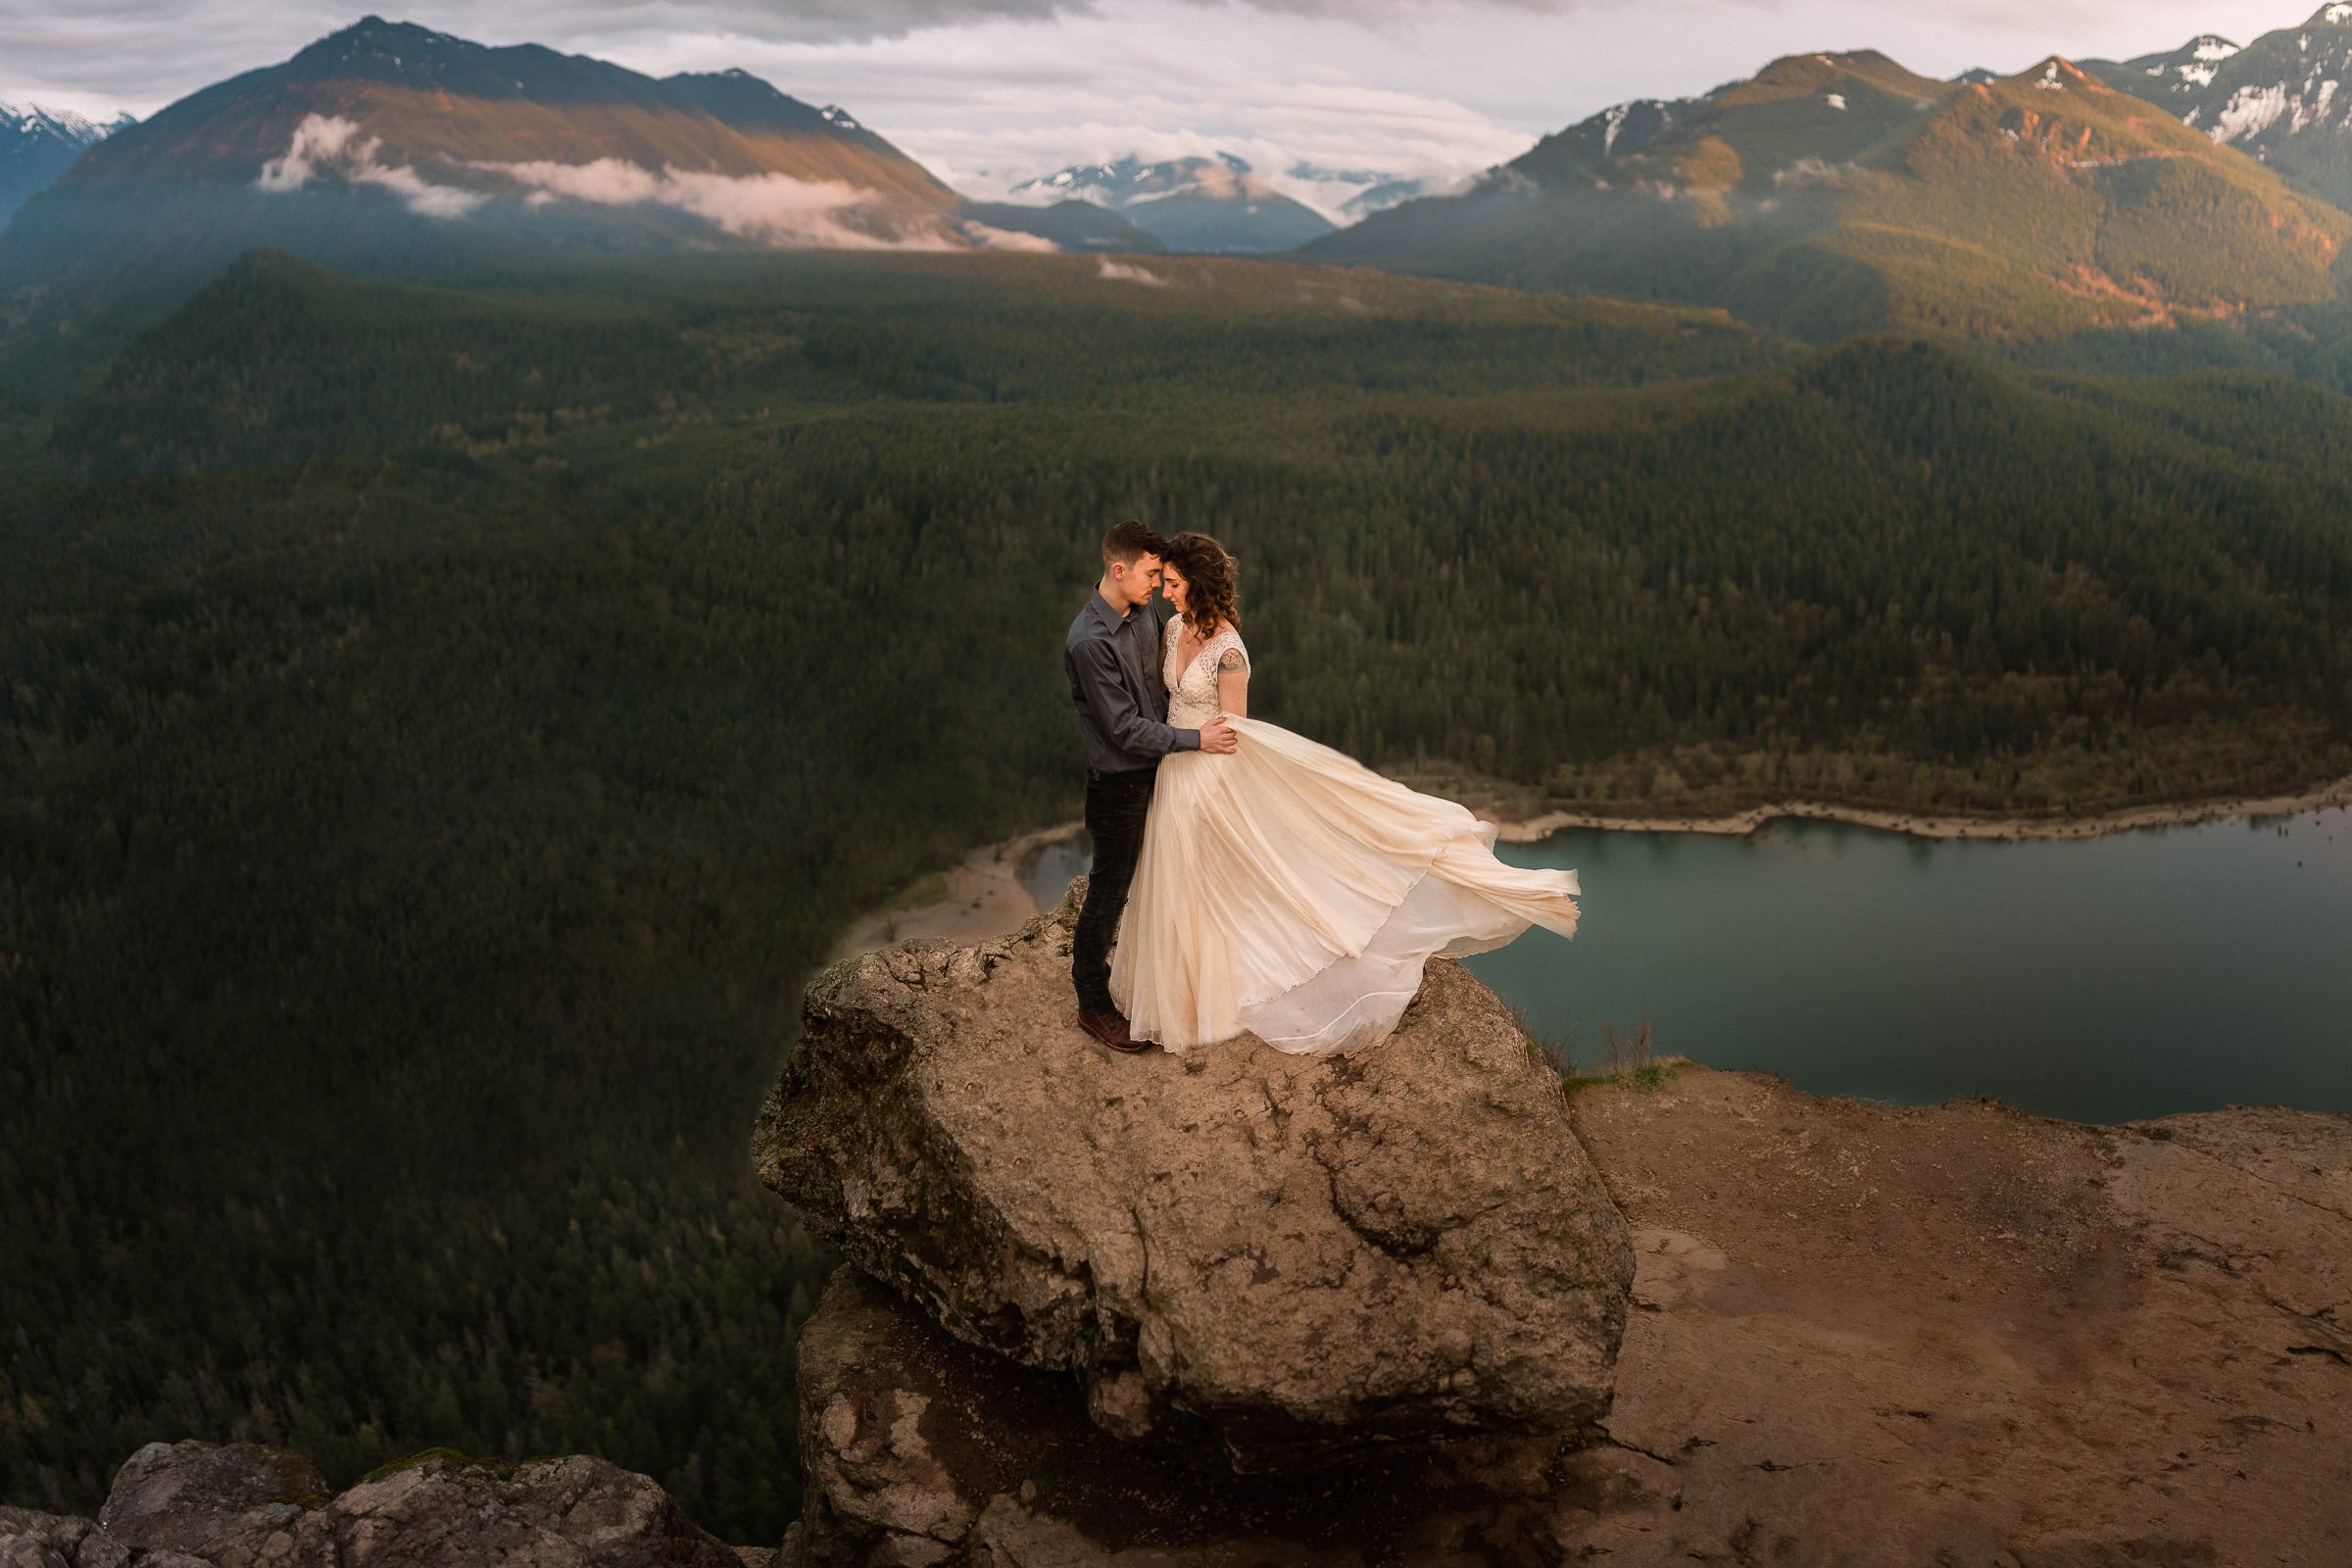 Couple hugging on mountain over lake in Vancouver